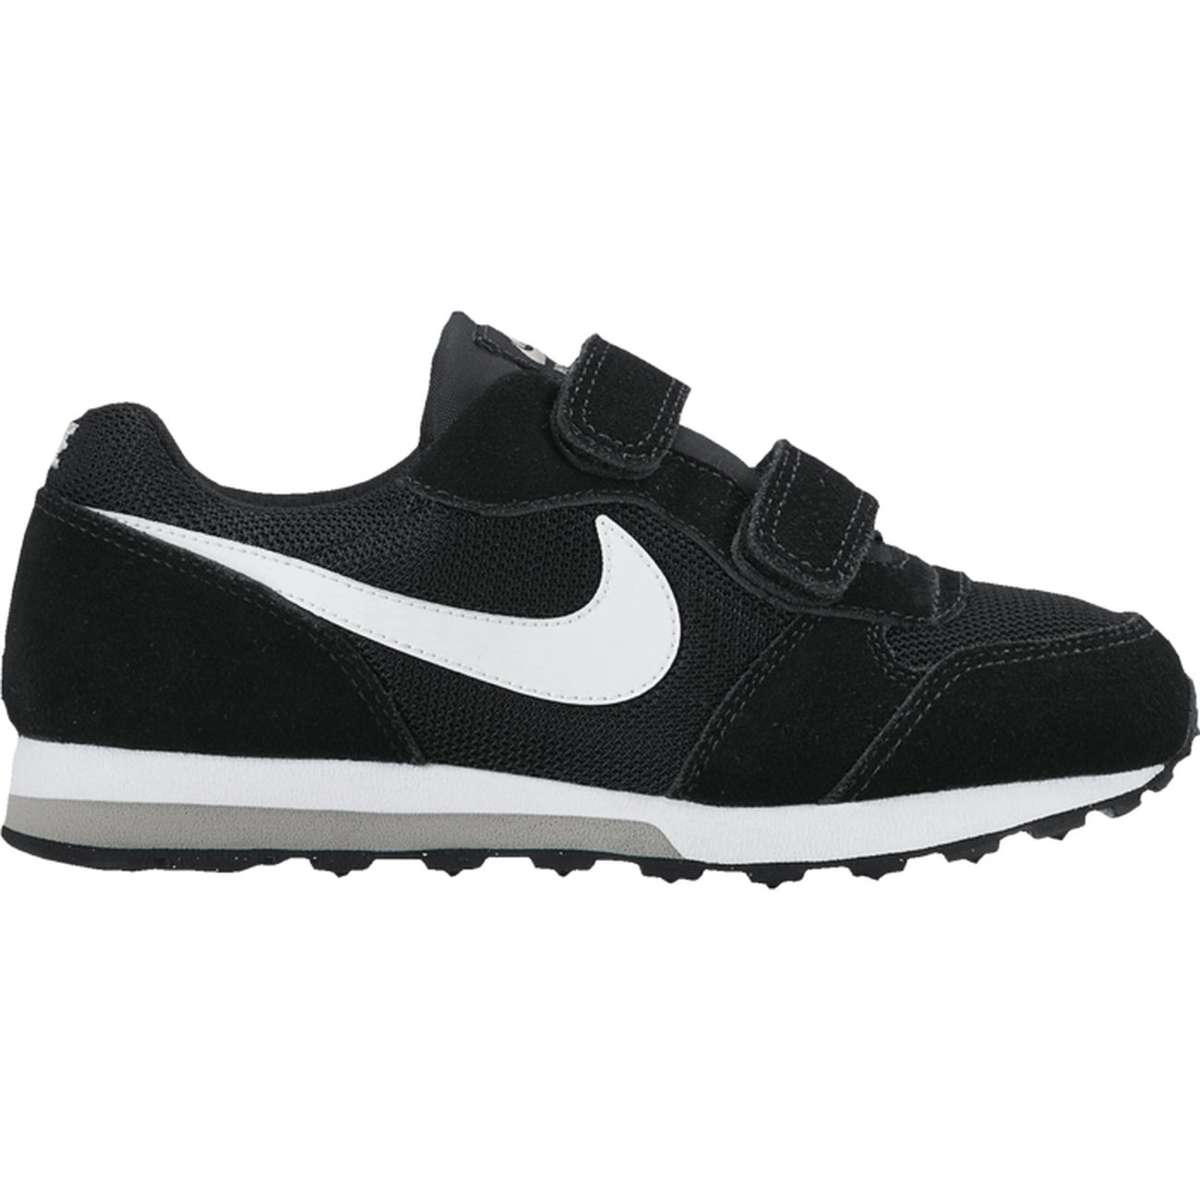 buying now order authorized site Baskets Nike md runner à scratch pour enfant - Taille 28.5 à ...